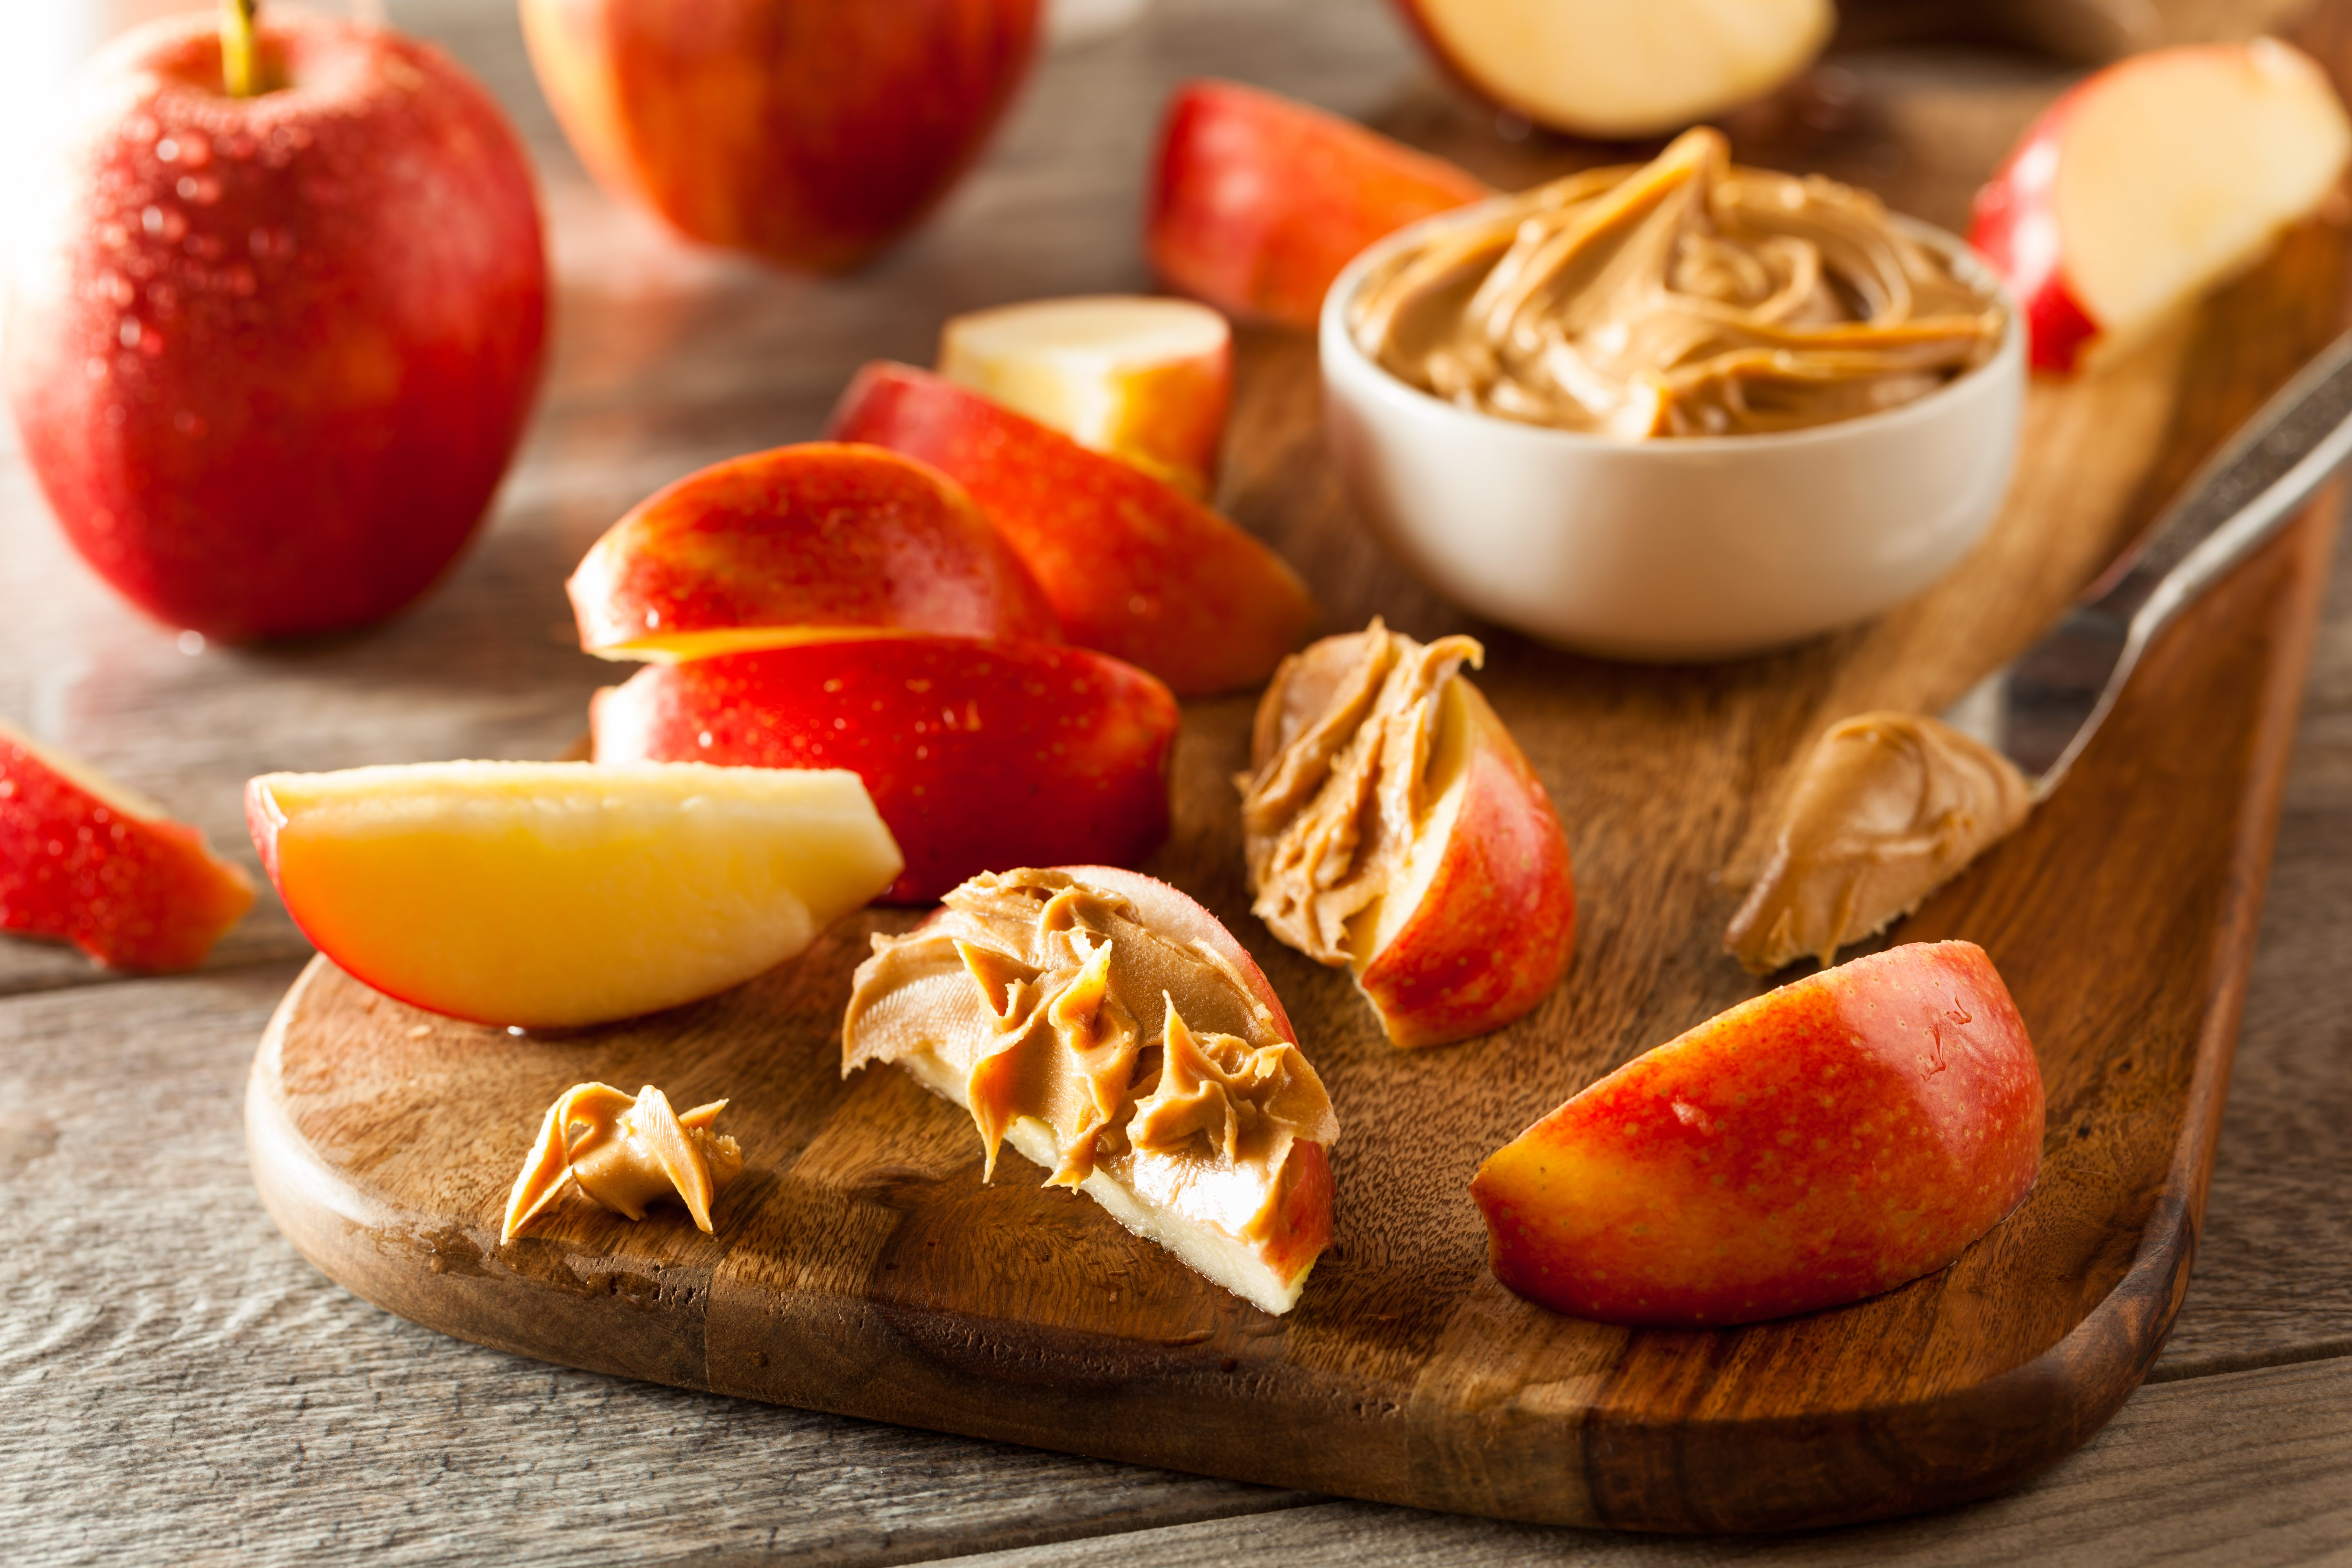 20 Snacks with 100 Calories or Less